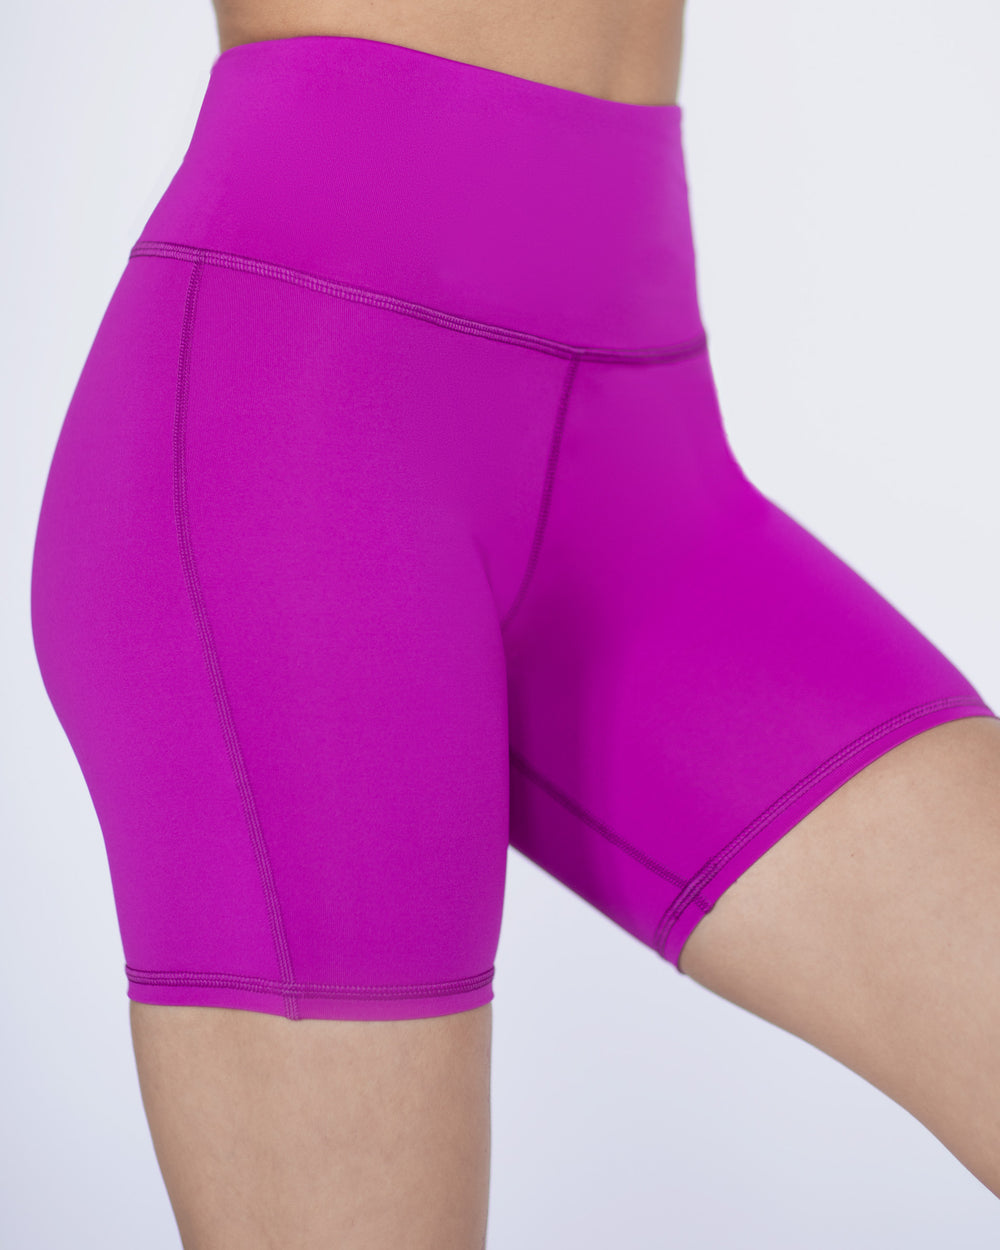 Instinct Bike Short 7 1/2 Inch - Magenta